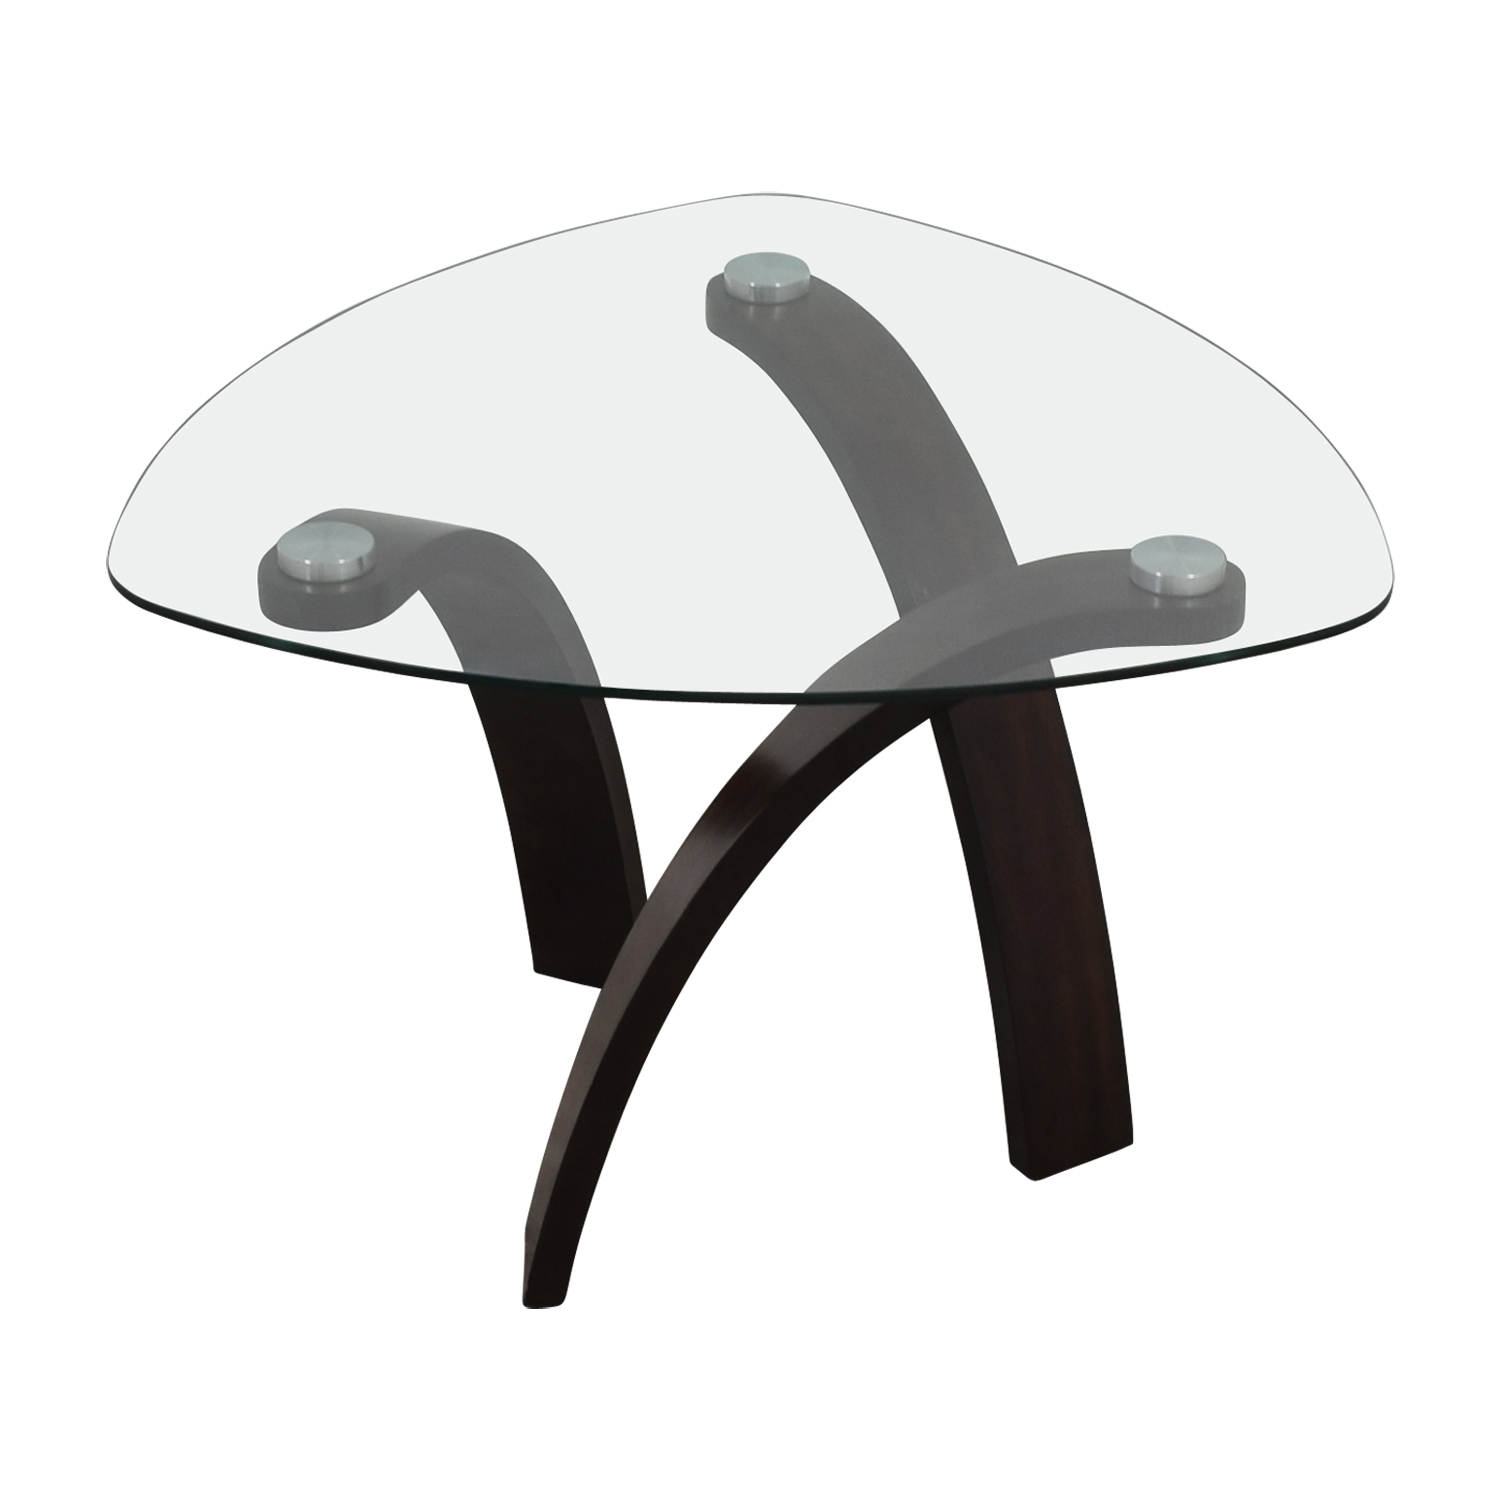 Rooms To Go Rooms To Go Rounded Triangular Glass End Table